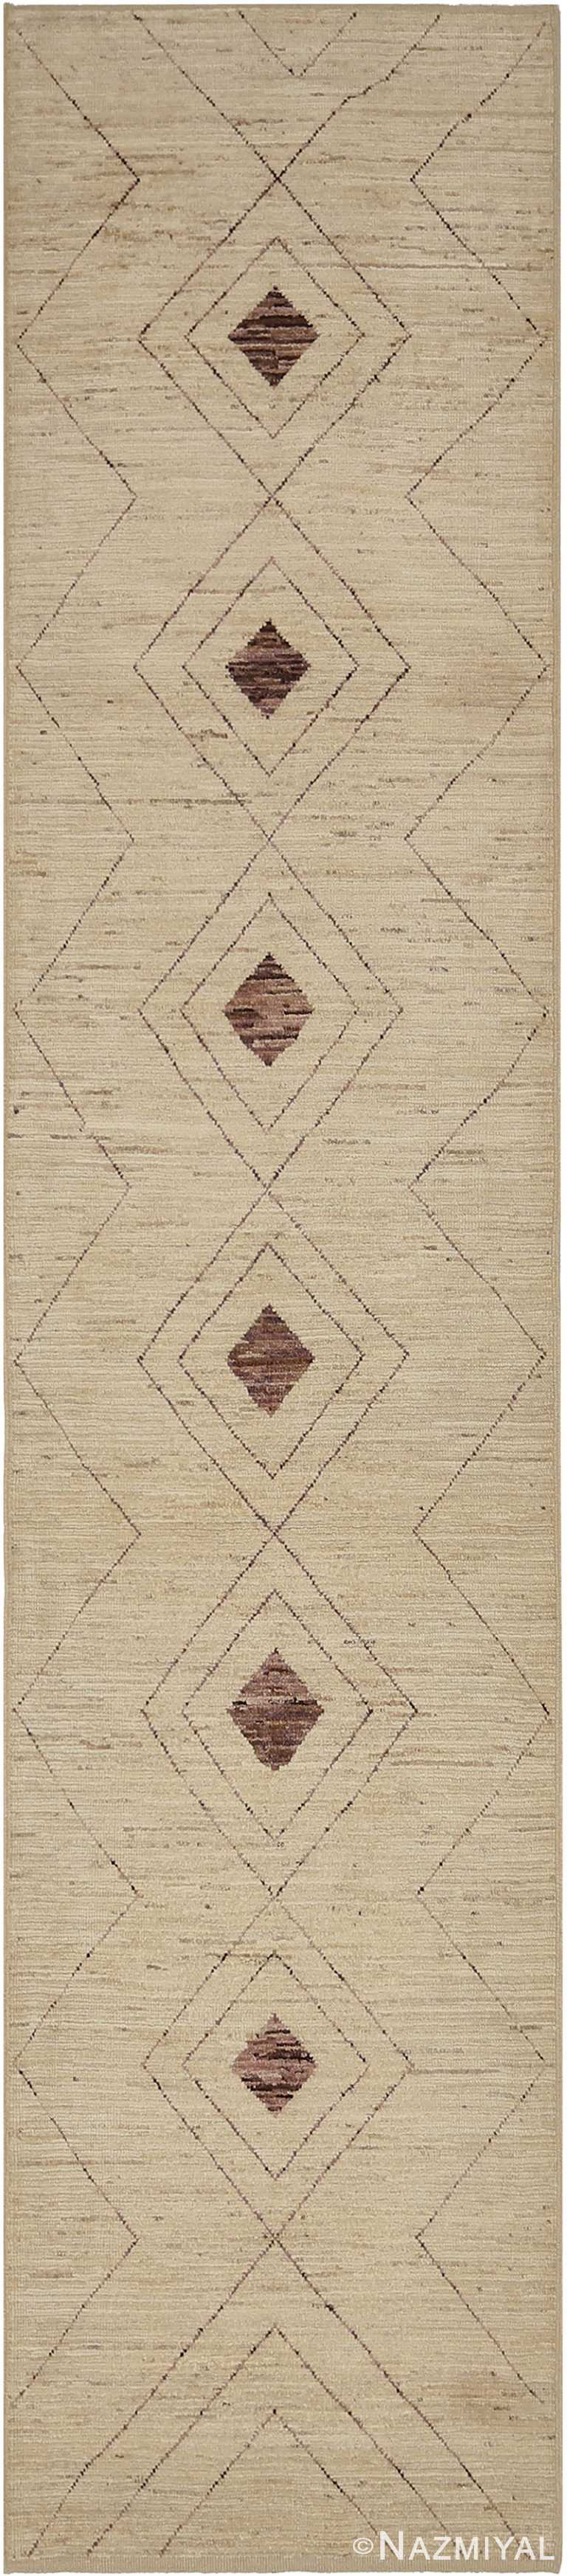 Beige and Brown Modern Moroccan Style Runner Rug 60333 by Nazmiyal NYC